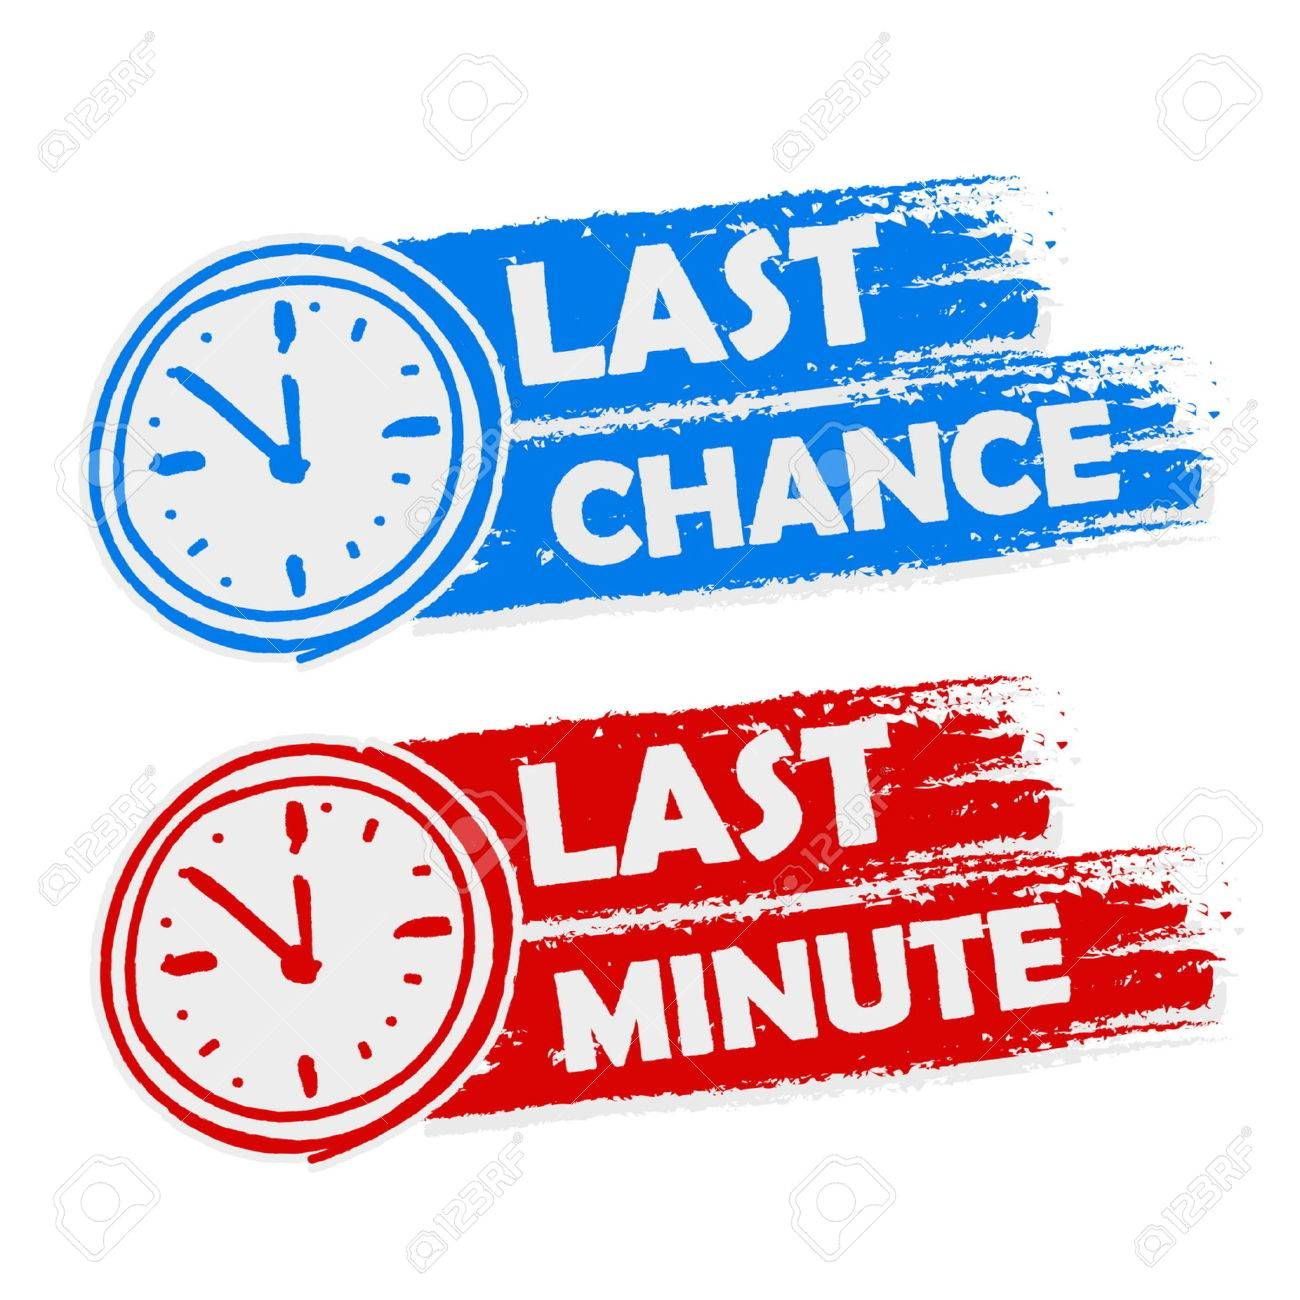 Last Chance And Last Minute Offer With Clock Signs Banners